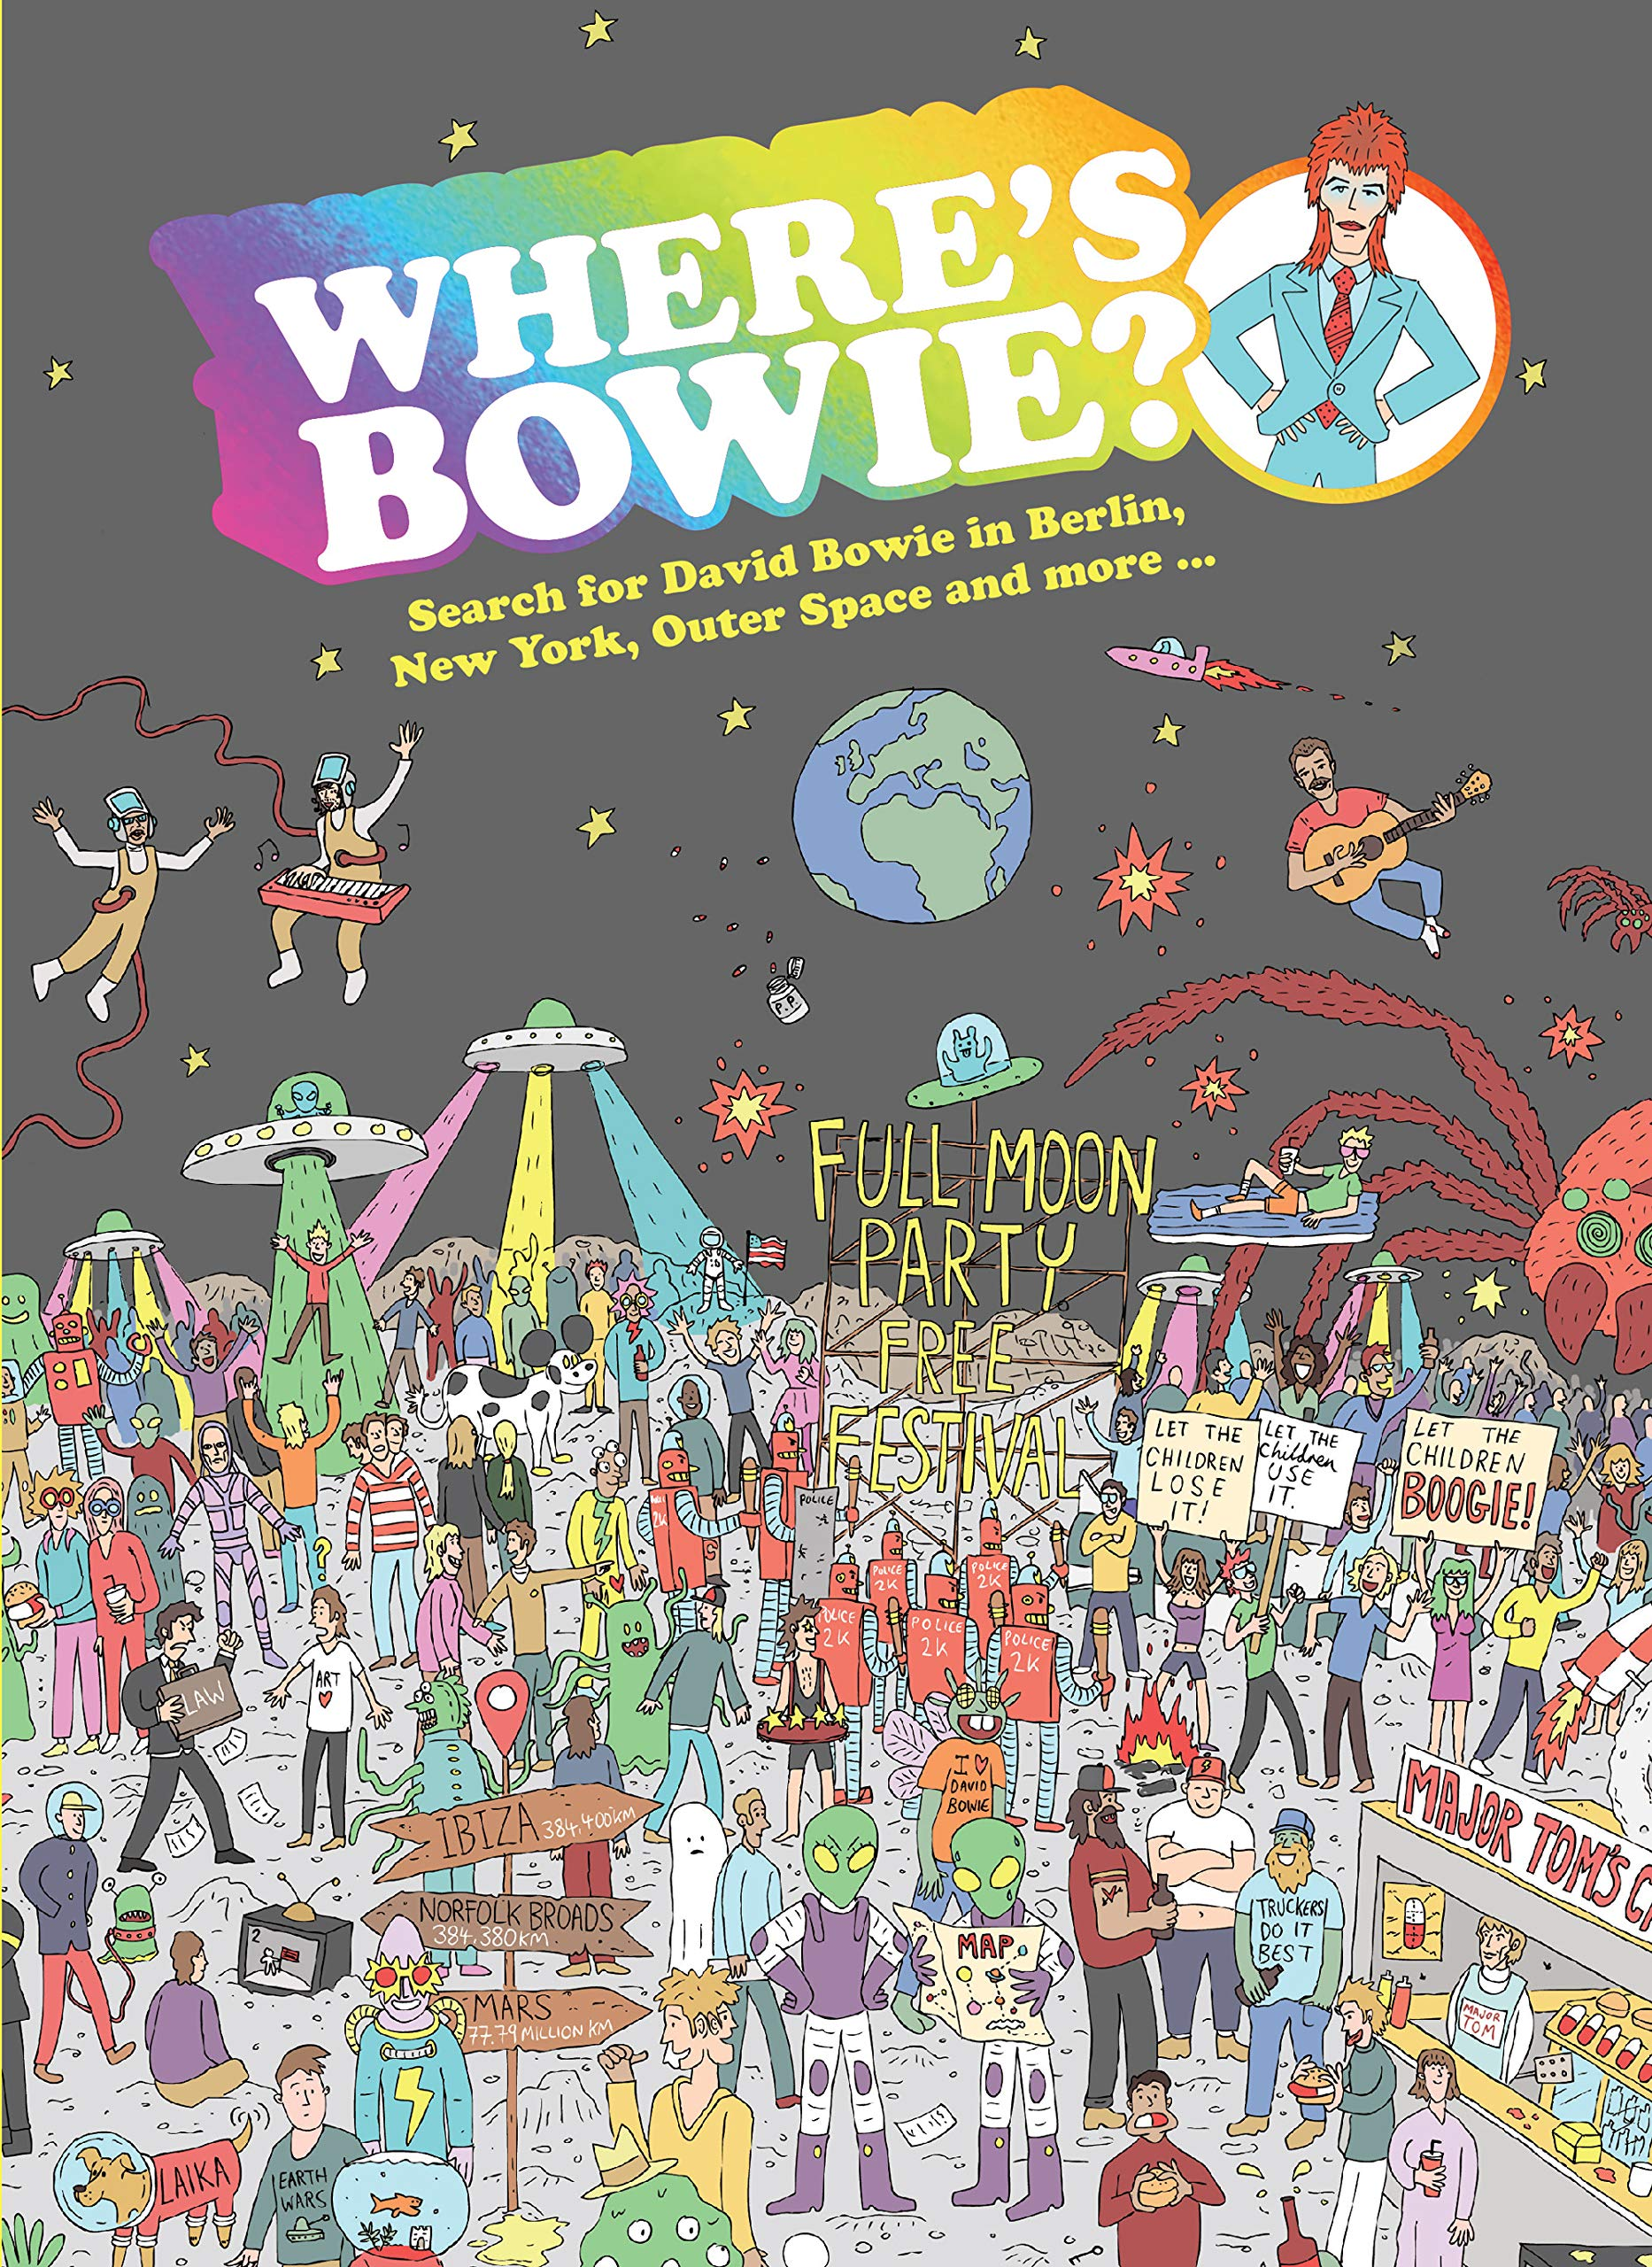 Where's Bowie?: Search for David Bowie in Berlin, New York, Outer Space and more...